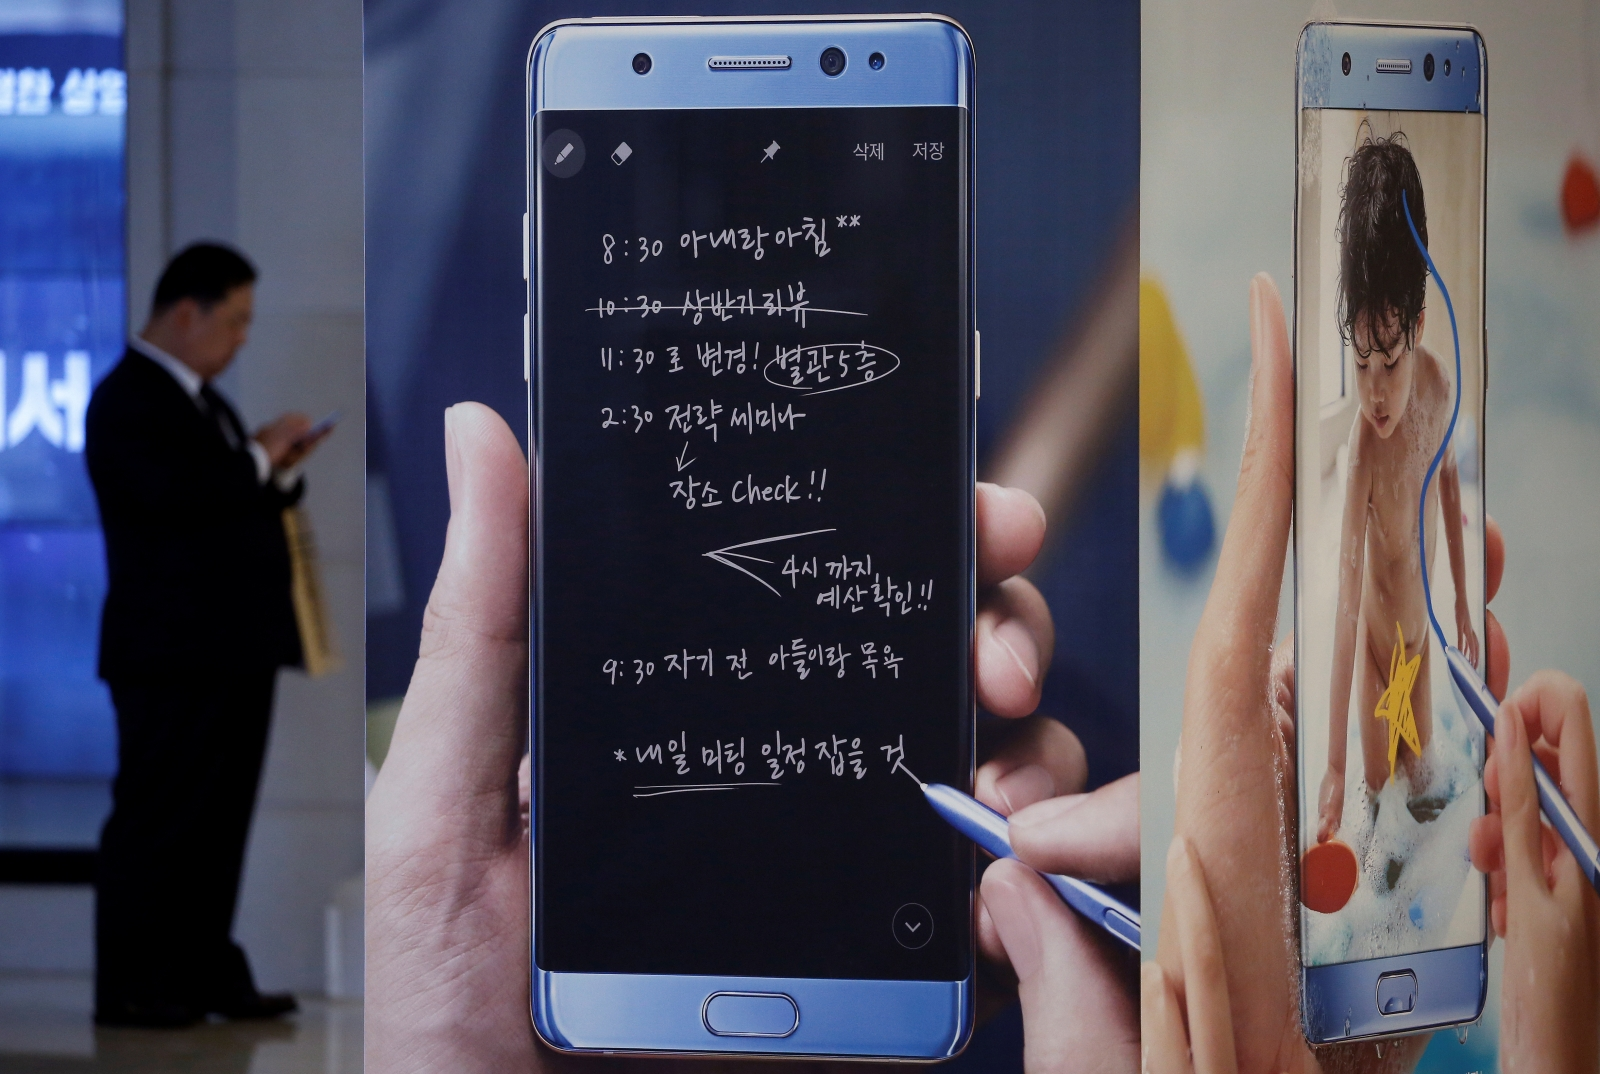 Galaxy Note 8 launch in September 2017